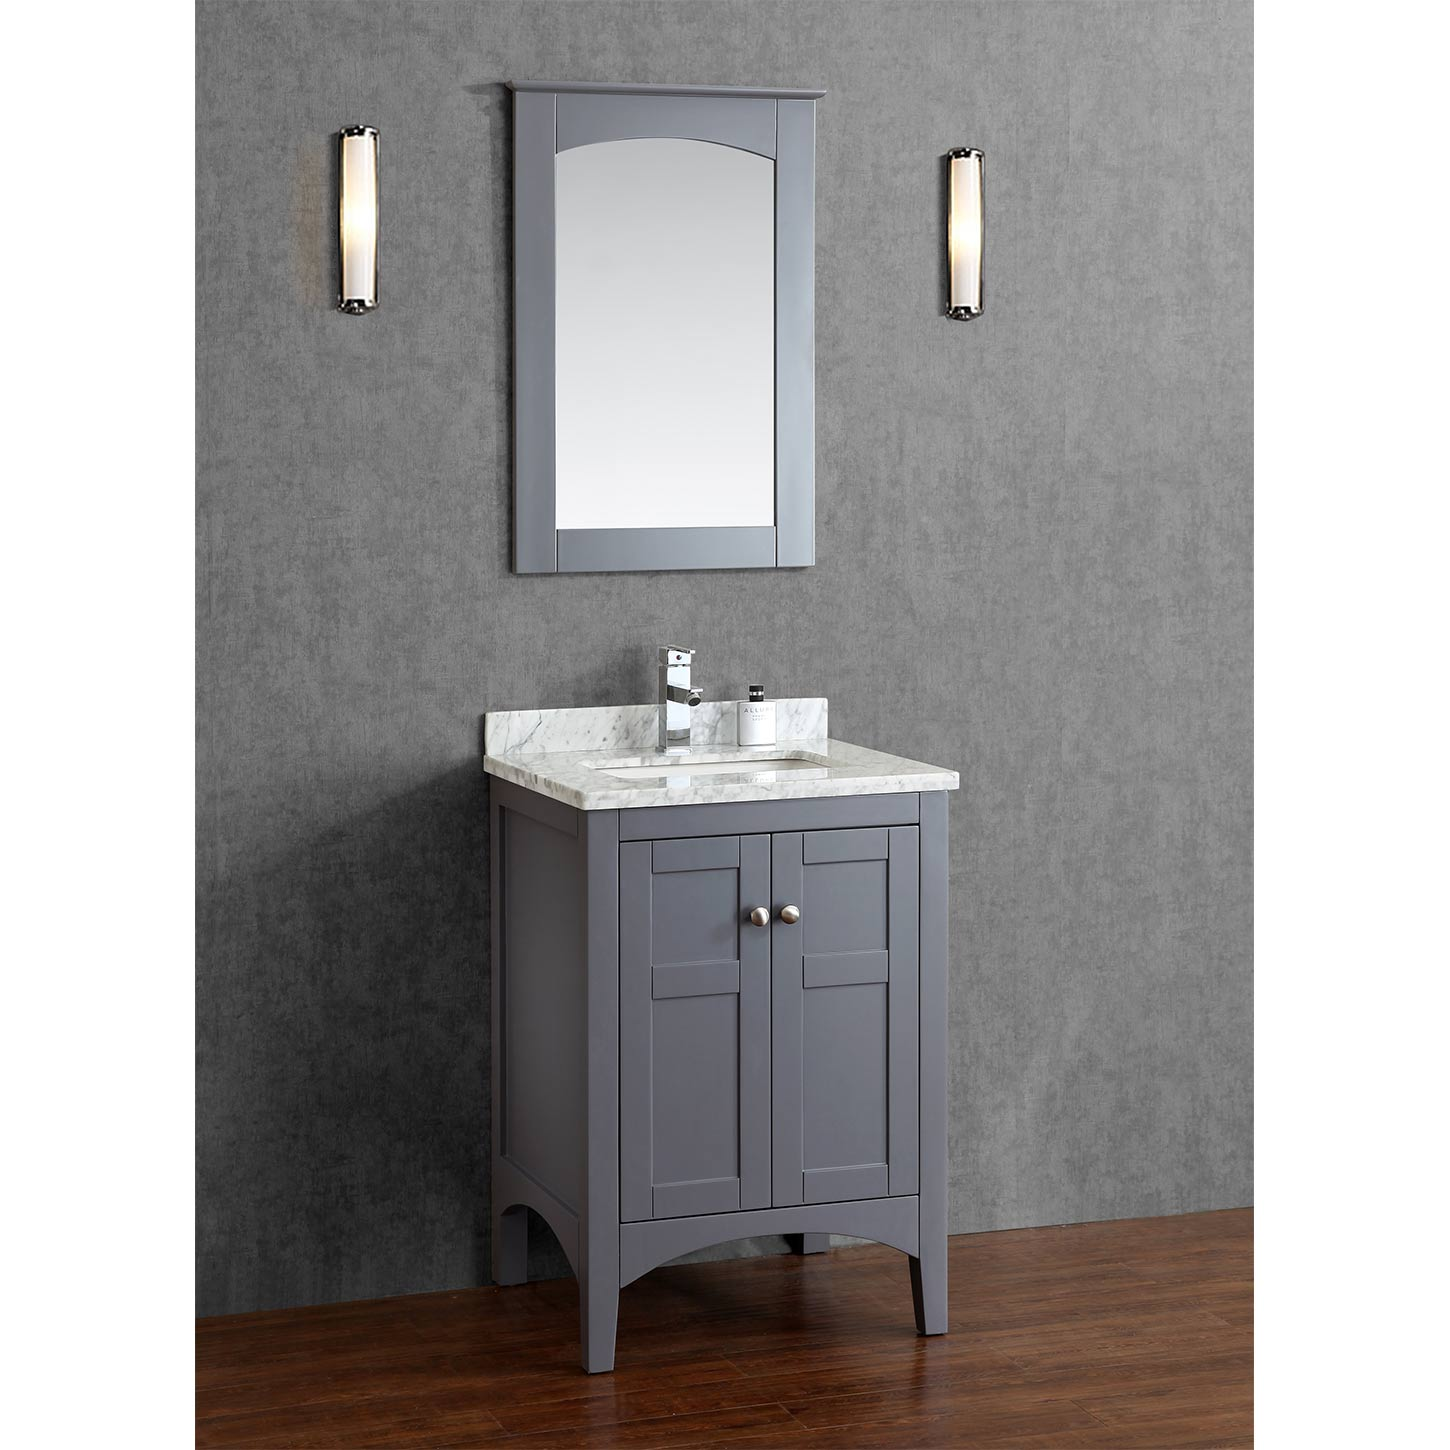 Buy martin 24 inch solid wood single bathroom vanity in for Bathroom vanities